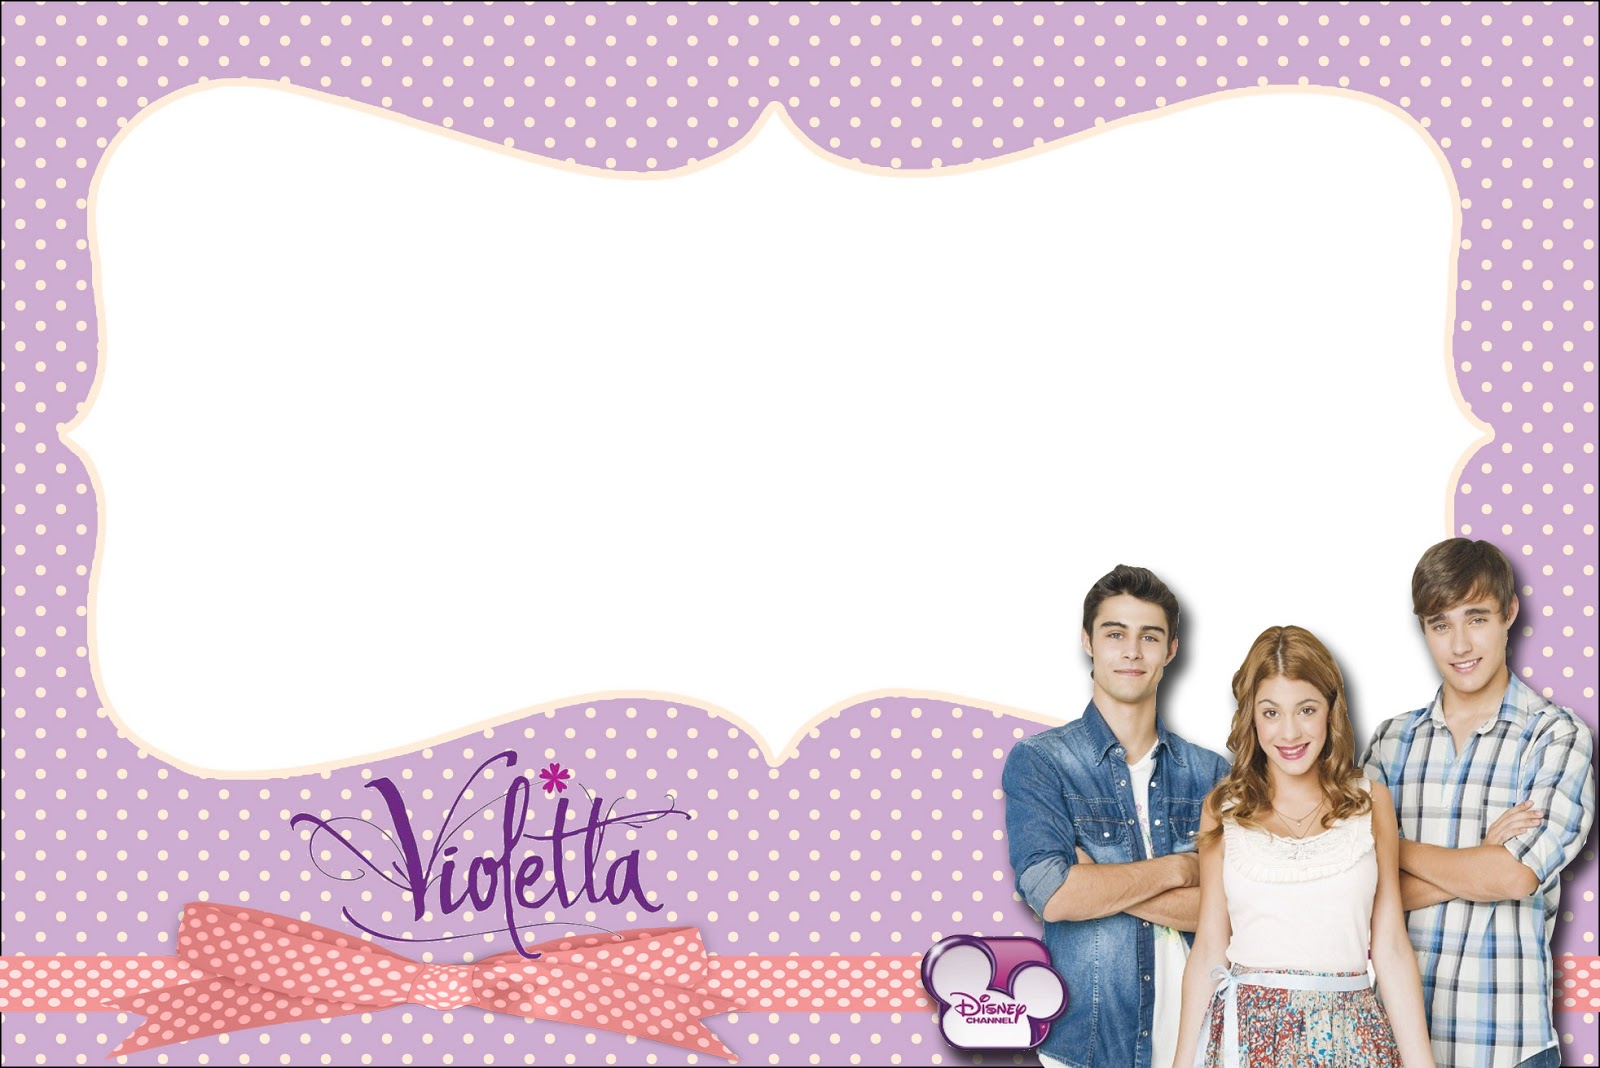 Violetta Free Printables Party Invitations Oh My Fiesta! in english